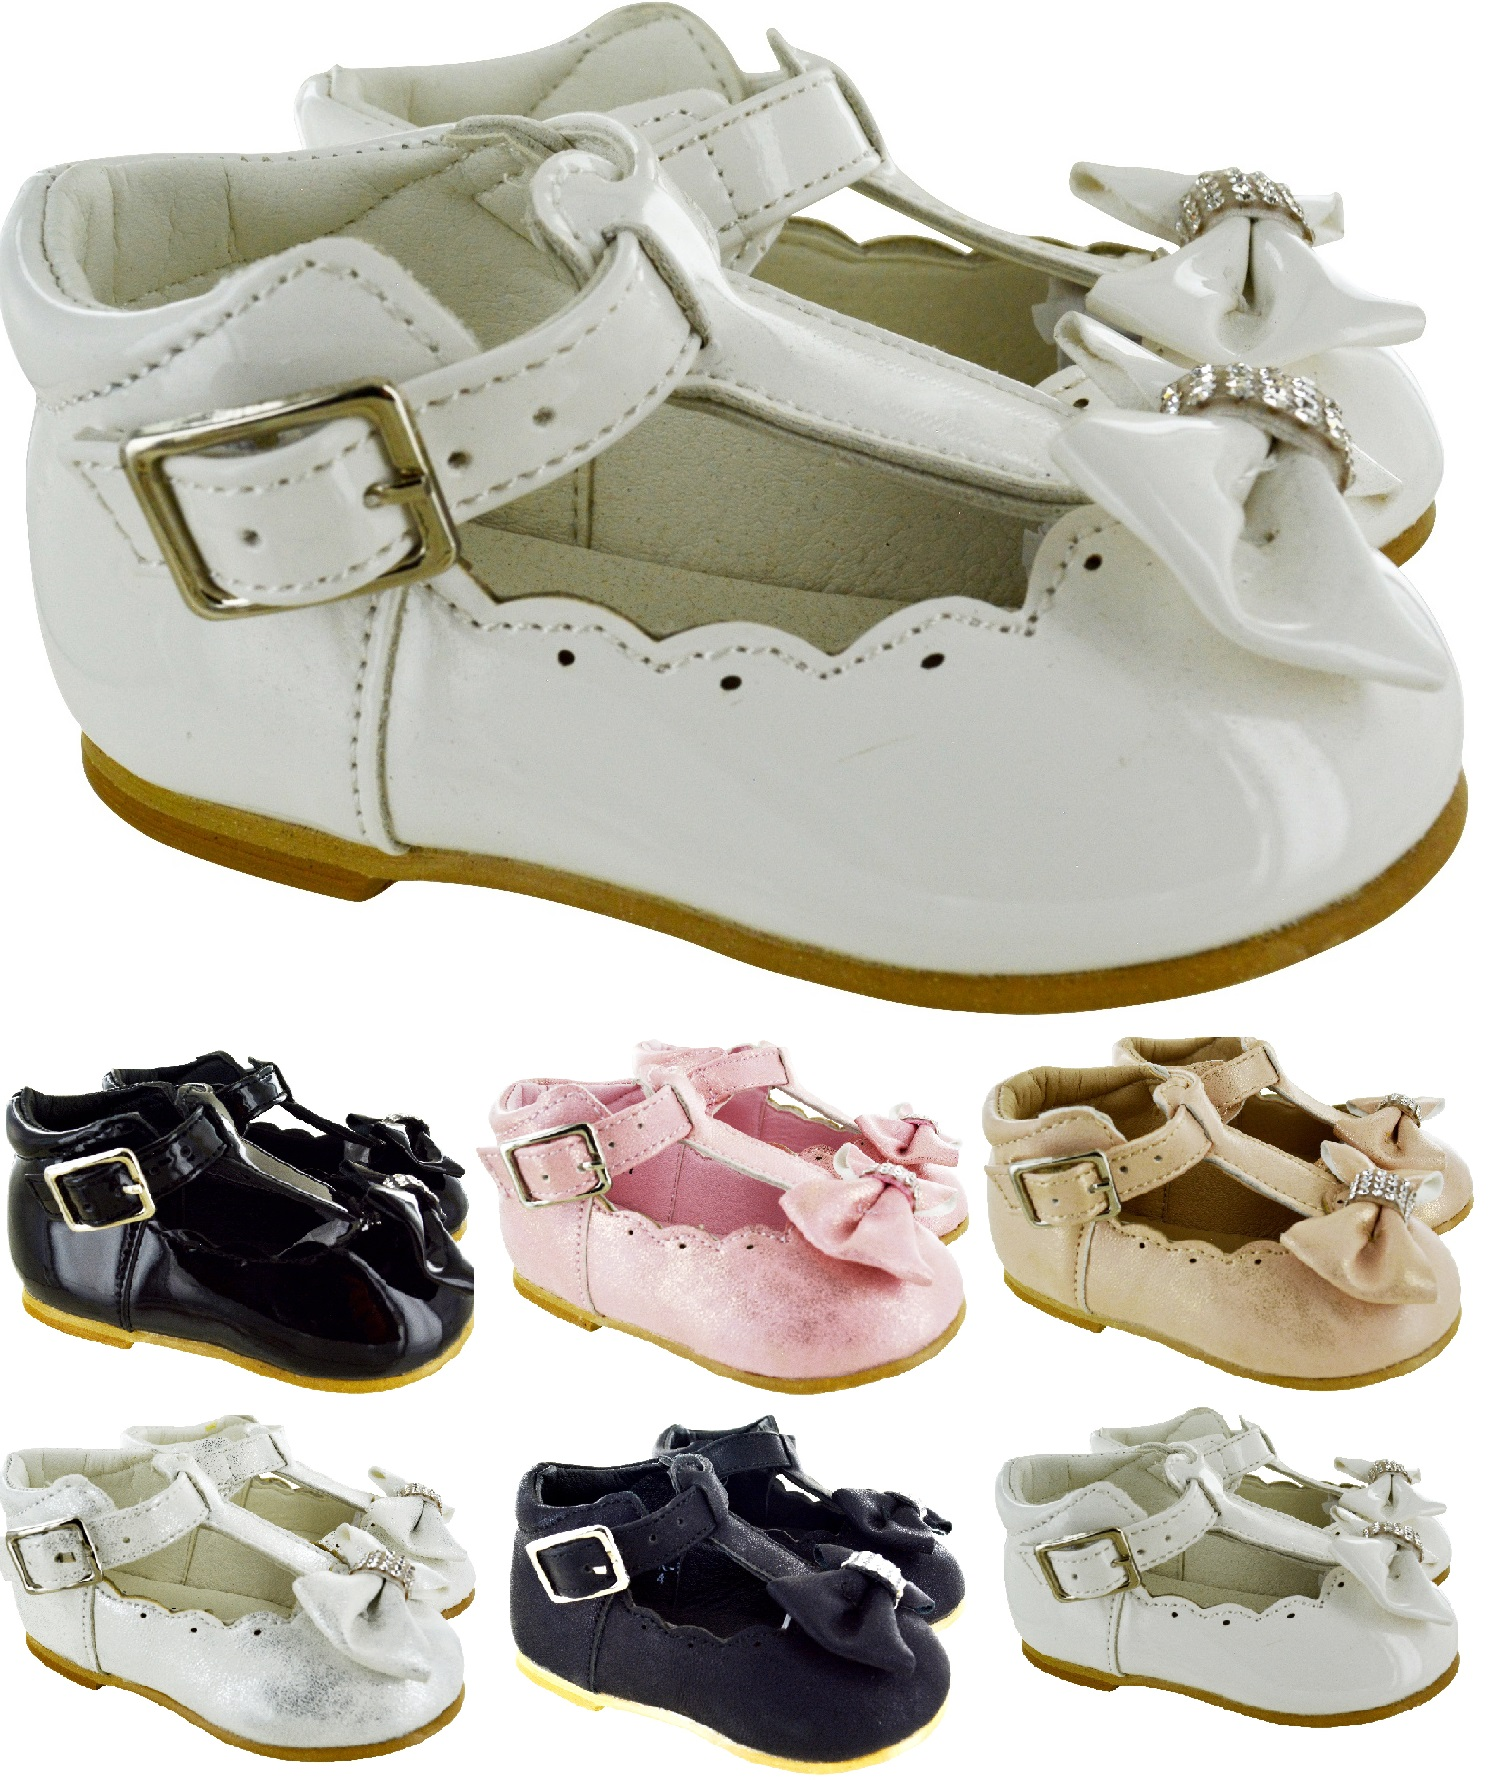 GIRLS INFANTS SPANISH WEDDING PARTY SUMMER PUMPS KIDS CHILDRENS BABY SHOES SIZE